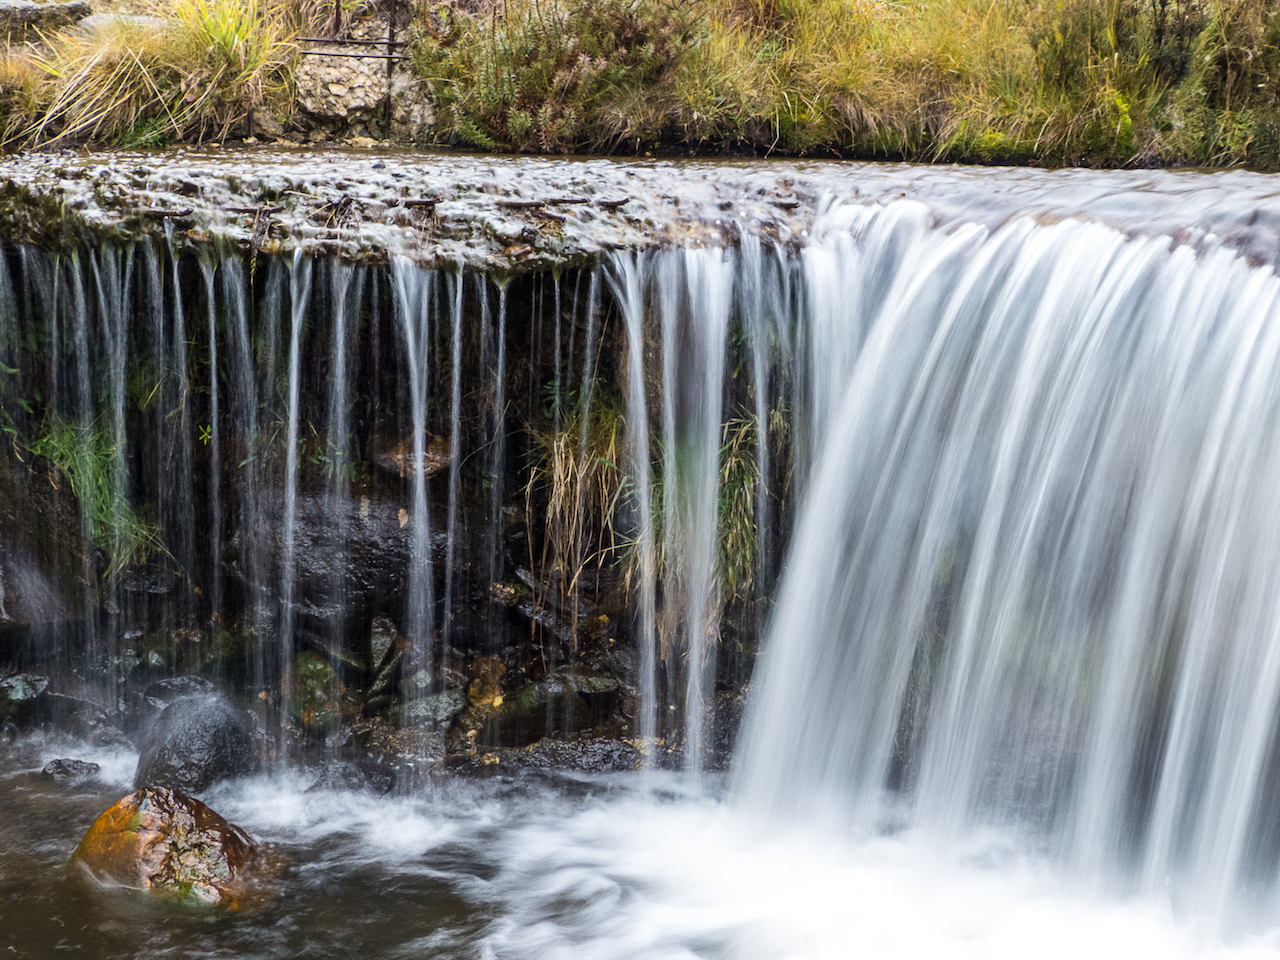 Water fall shot with a slow shutter.